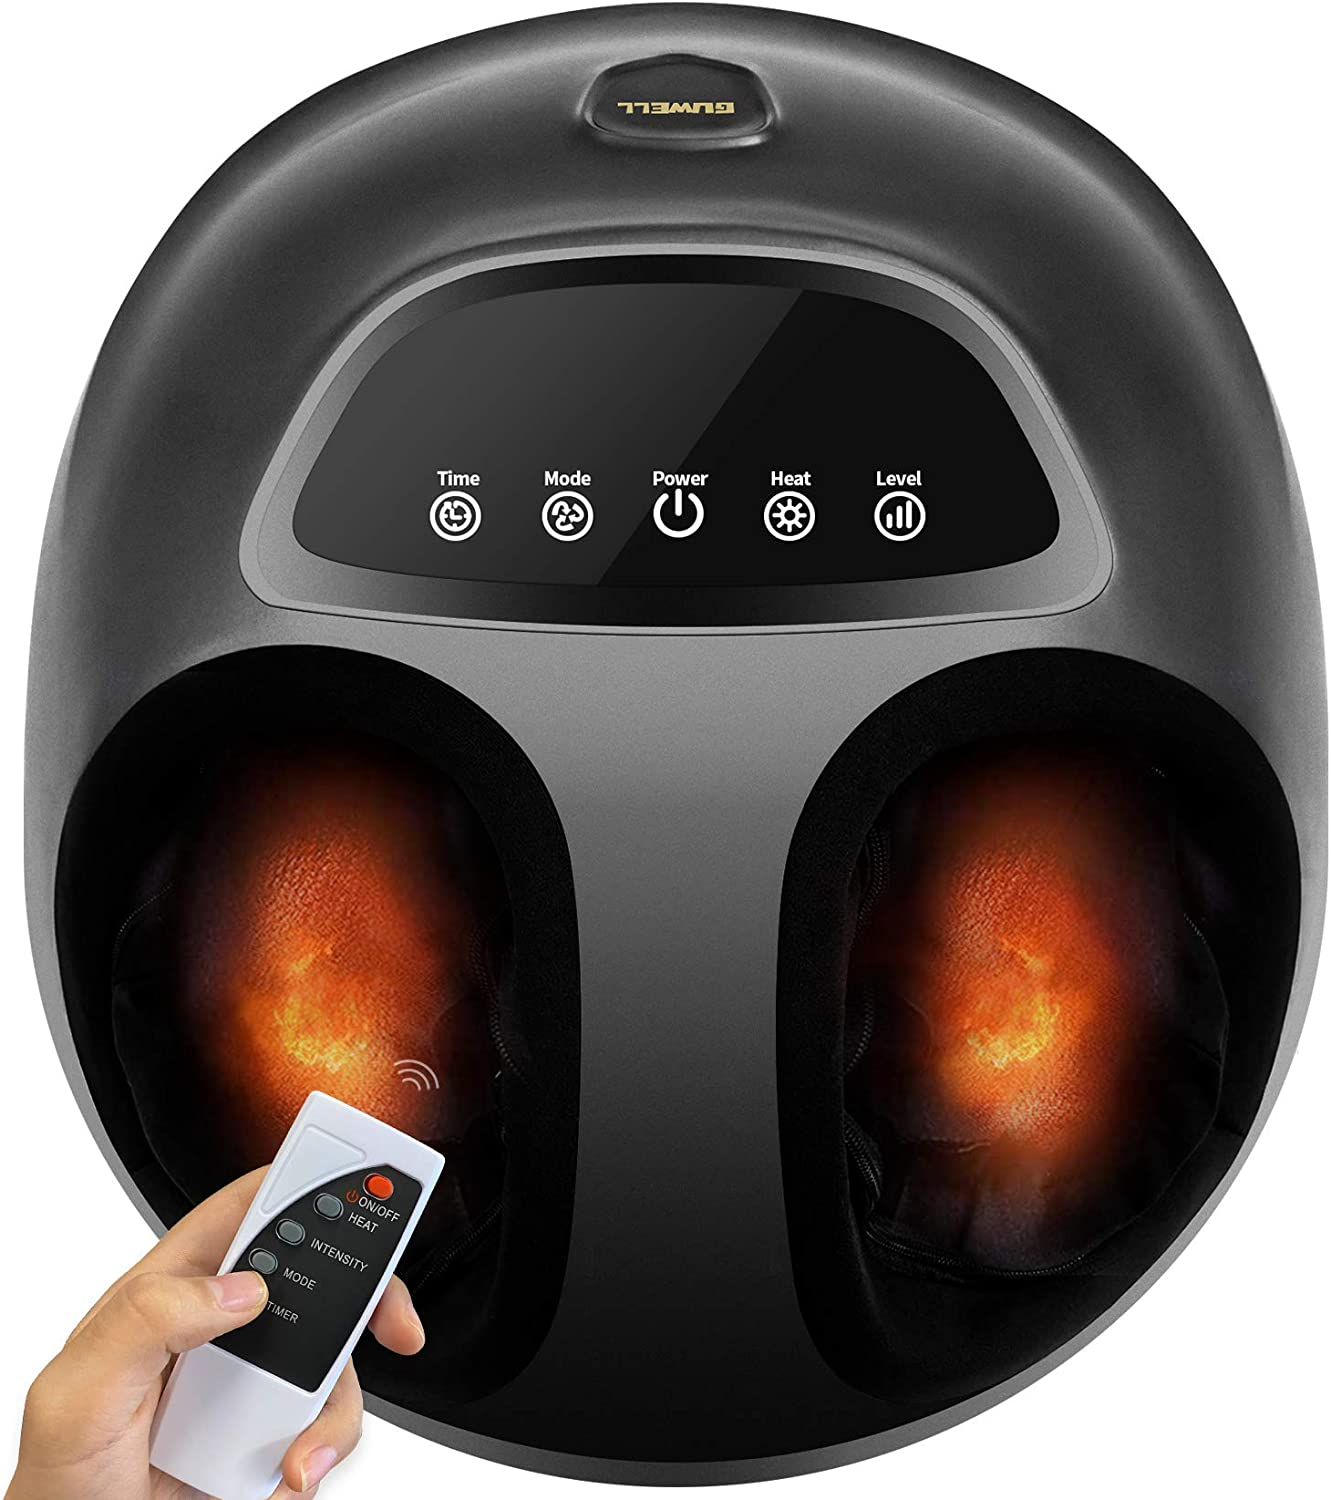 Foot Massager Machine with Heat and Remote Control, Shiatsu Deep Kneading, Multi-Level Settings,Air Compression for Women Men, 12, Black